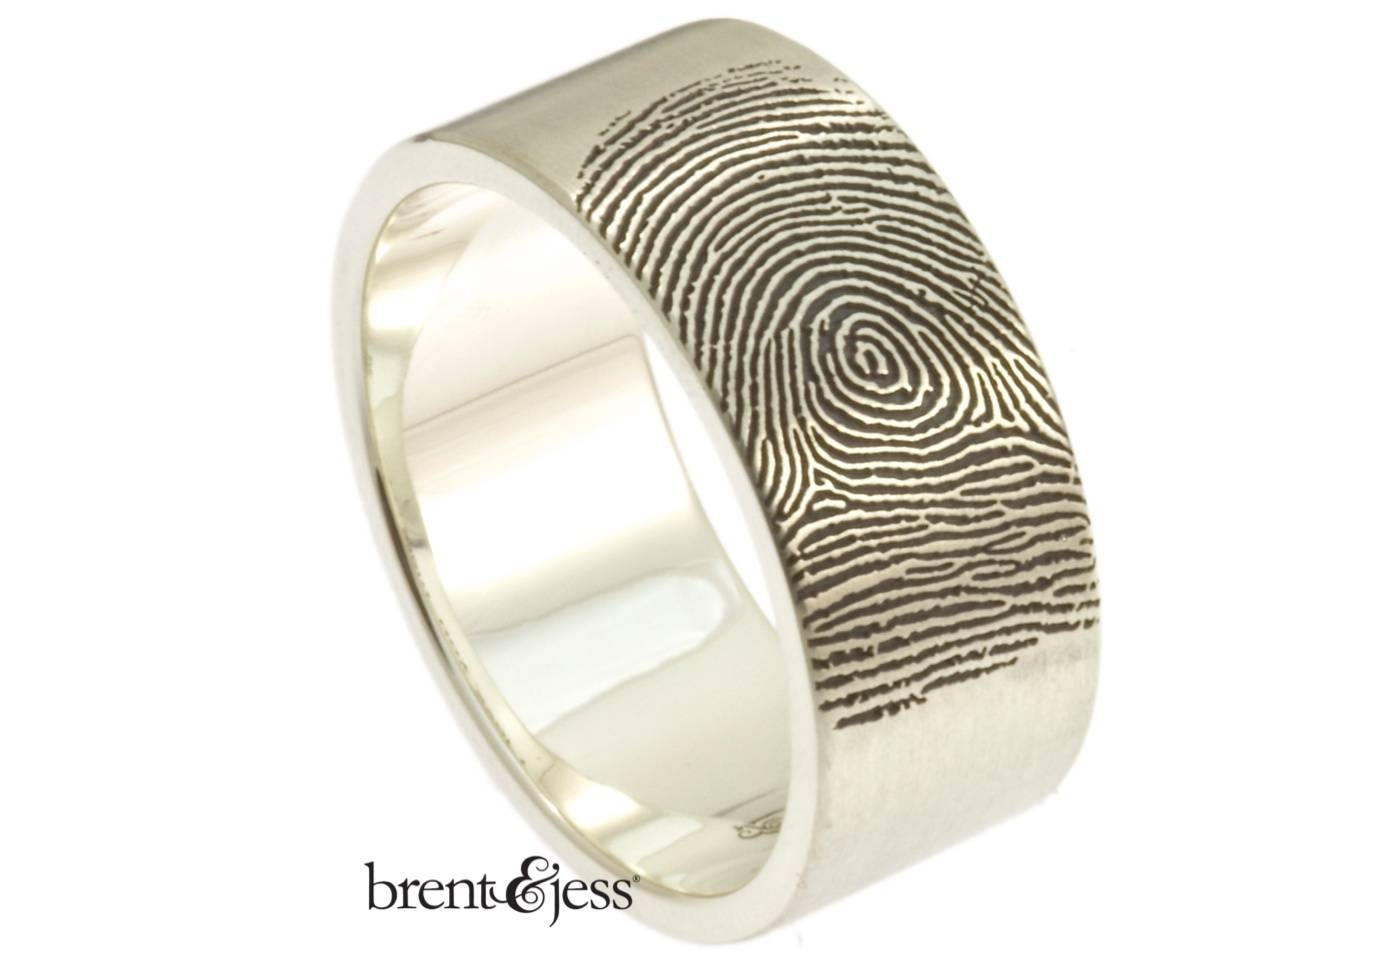 Modern Wedding Rings – Brent&jess Blog – A Spotlight On Our Throughout Contemporary Wedding Rings (View 4 of 15)